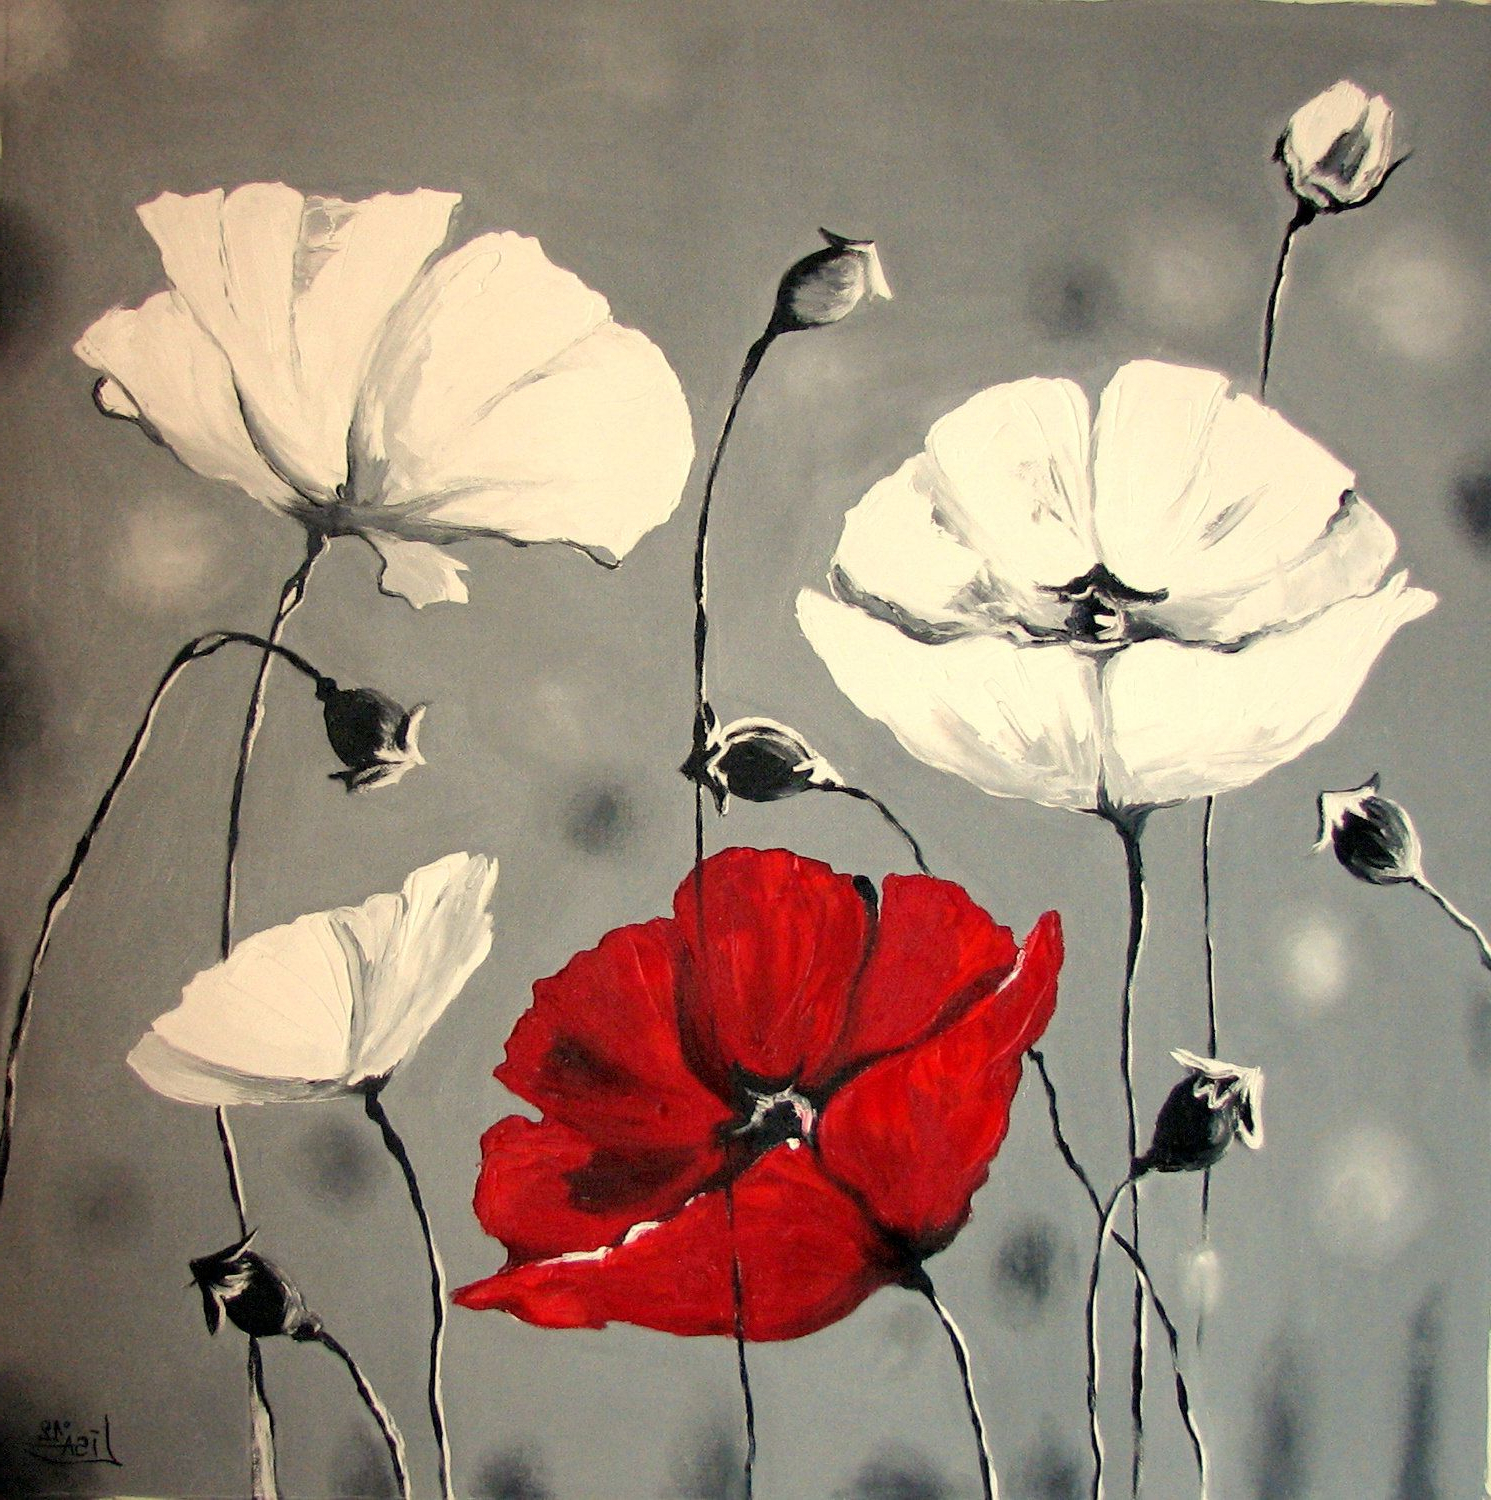 Well Liked Large Abstract Painting Original Oil Painting 51 X 51 In Blended Fabric Poppy Red Wall Hangings (View 16 of 20)